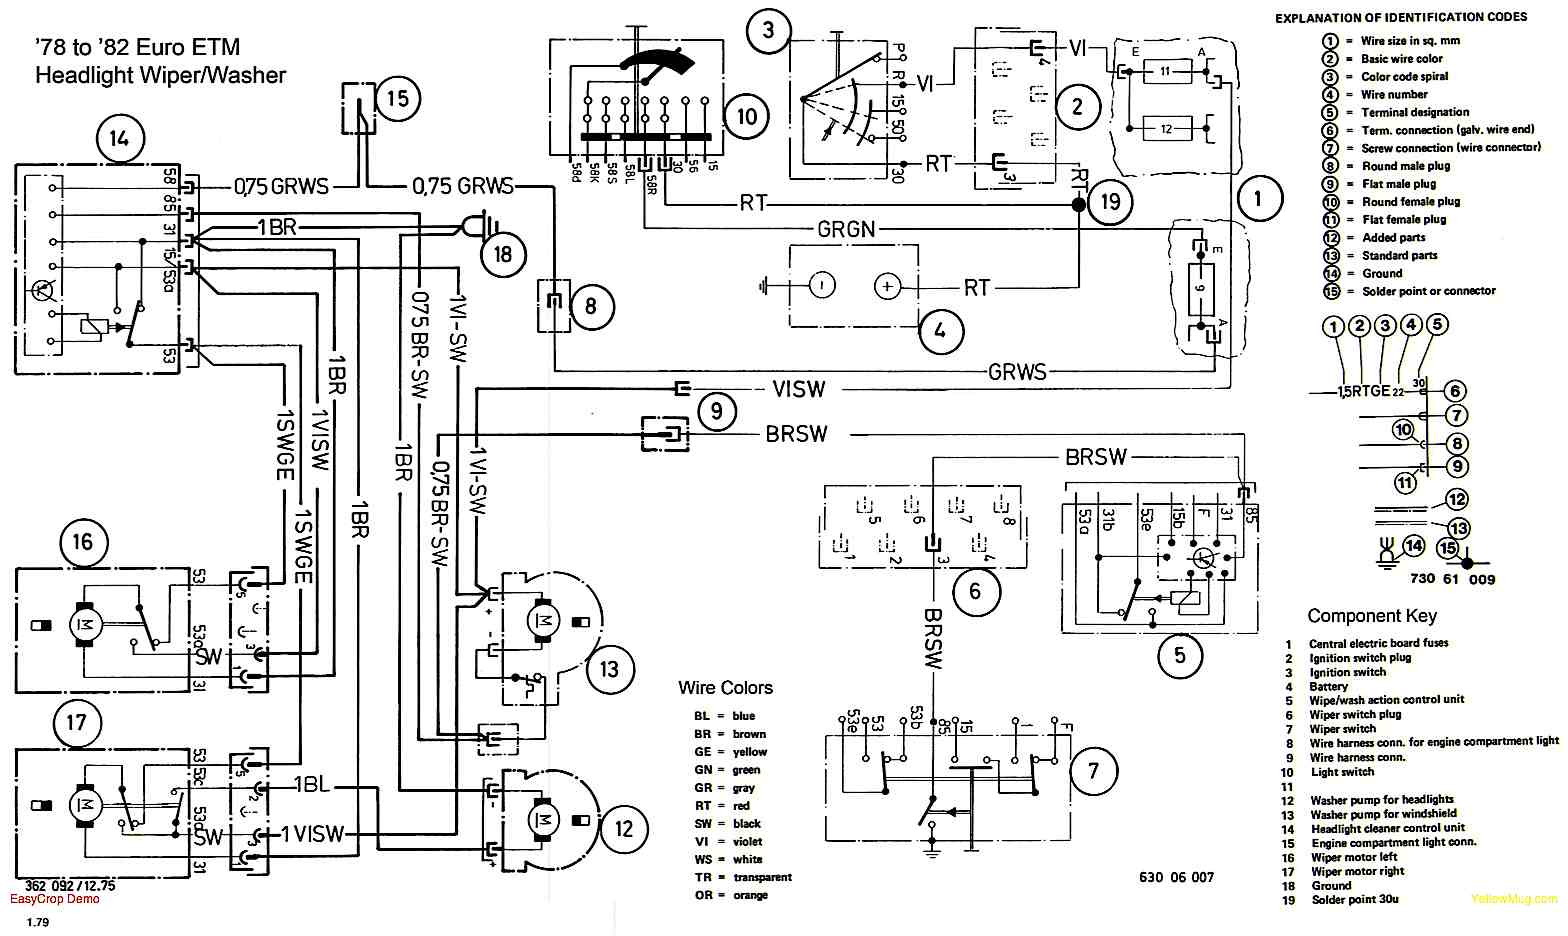 Showthread additionally Ford F 250 Fuse Diagram Central Junction Box furthermore Fisher Dodge Headlight Harness Diagram in addition 6mqm1 Gm Yukon Need  plete Correct Wiring Schematic besides 5qti5 1998 Ford Taurus Checked Fuses Wiring Bulbs Turn Signals. on 2012 f350 headlights